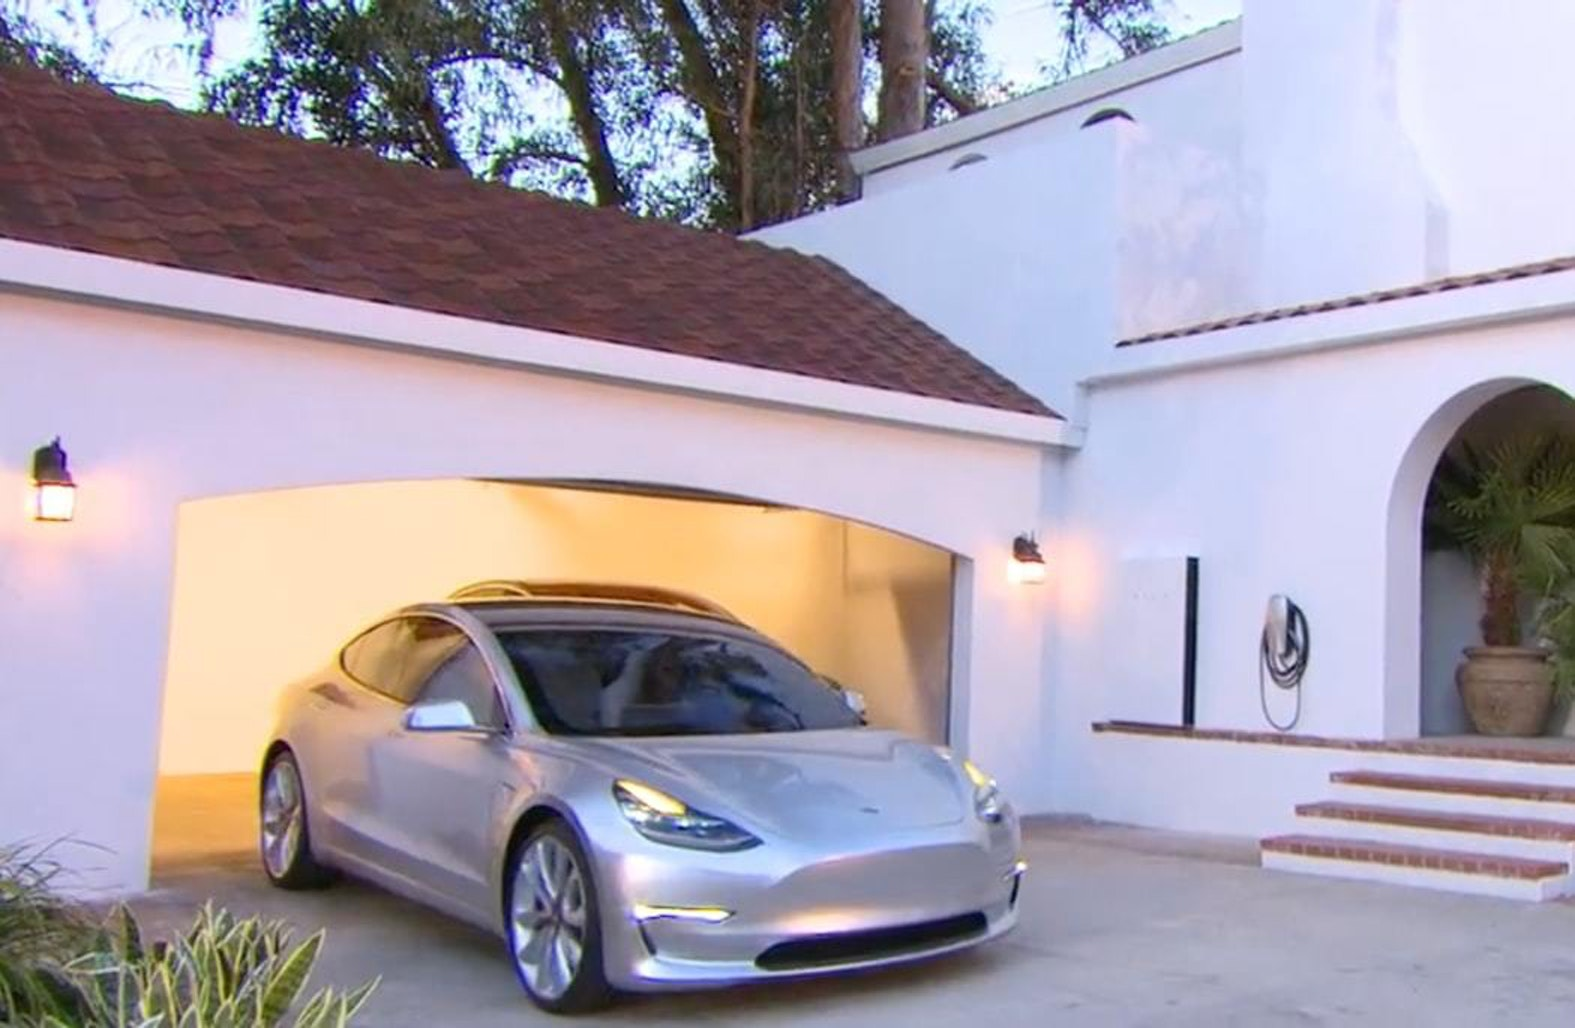 A Tesla Model 3, pulling out of a garage with solar panels on the roof.